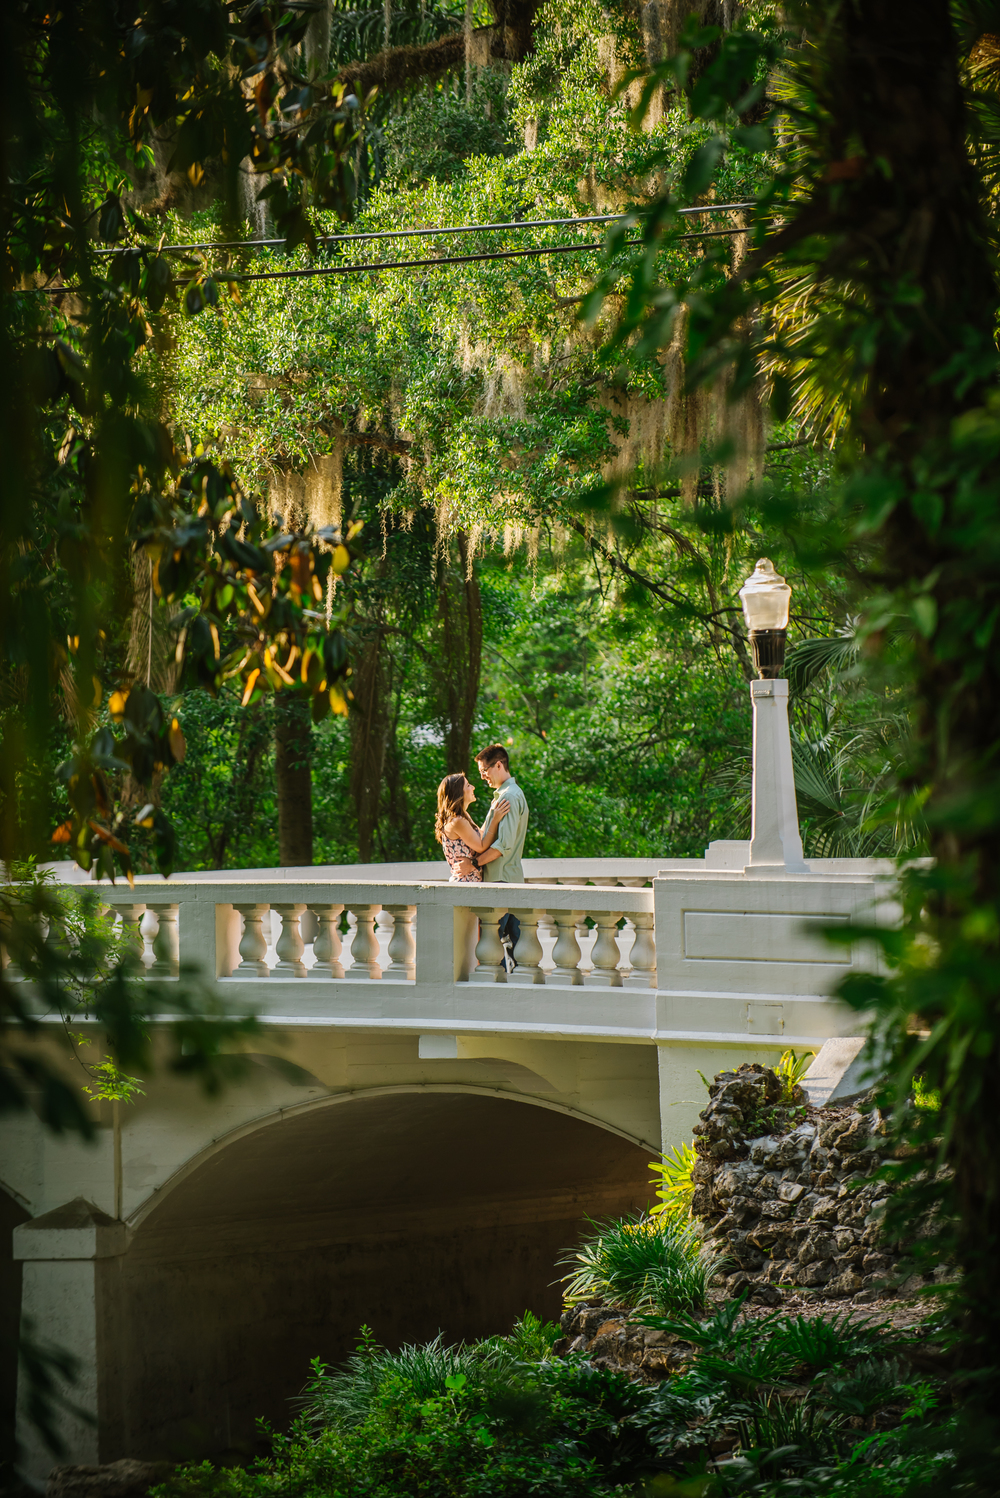 tampa-engagement-photographer-outdoor-candid-stylish-modern-fun-vibrant-real-love-candid-orlando-lake-eiola-session-romantic-bridge